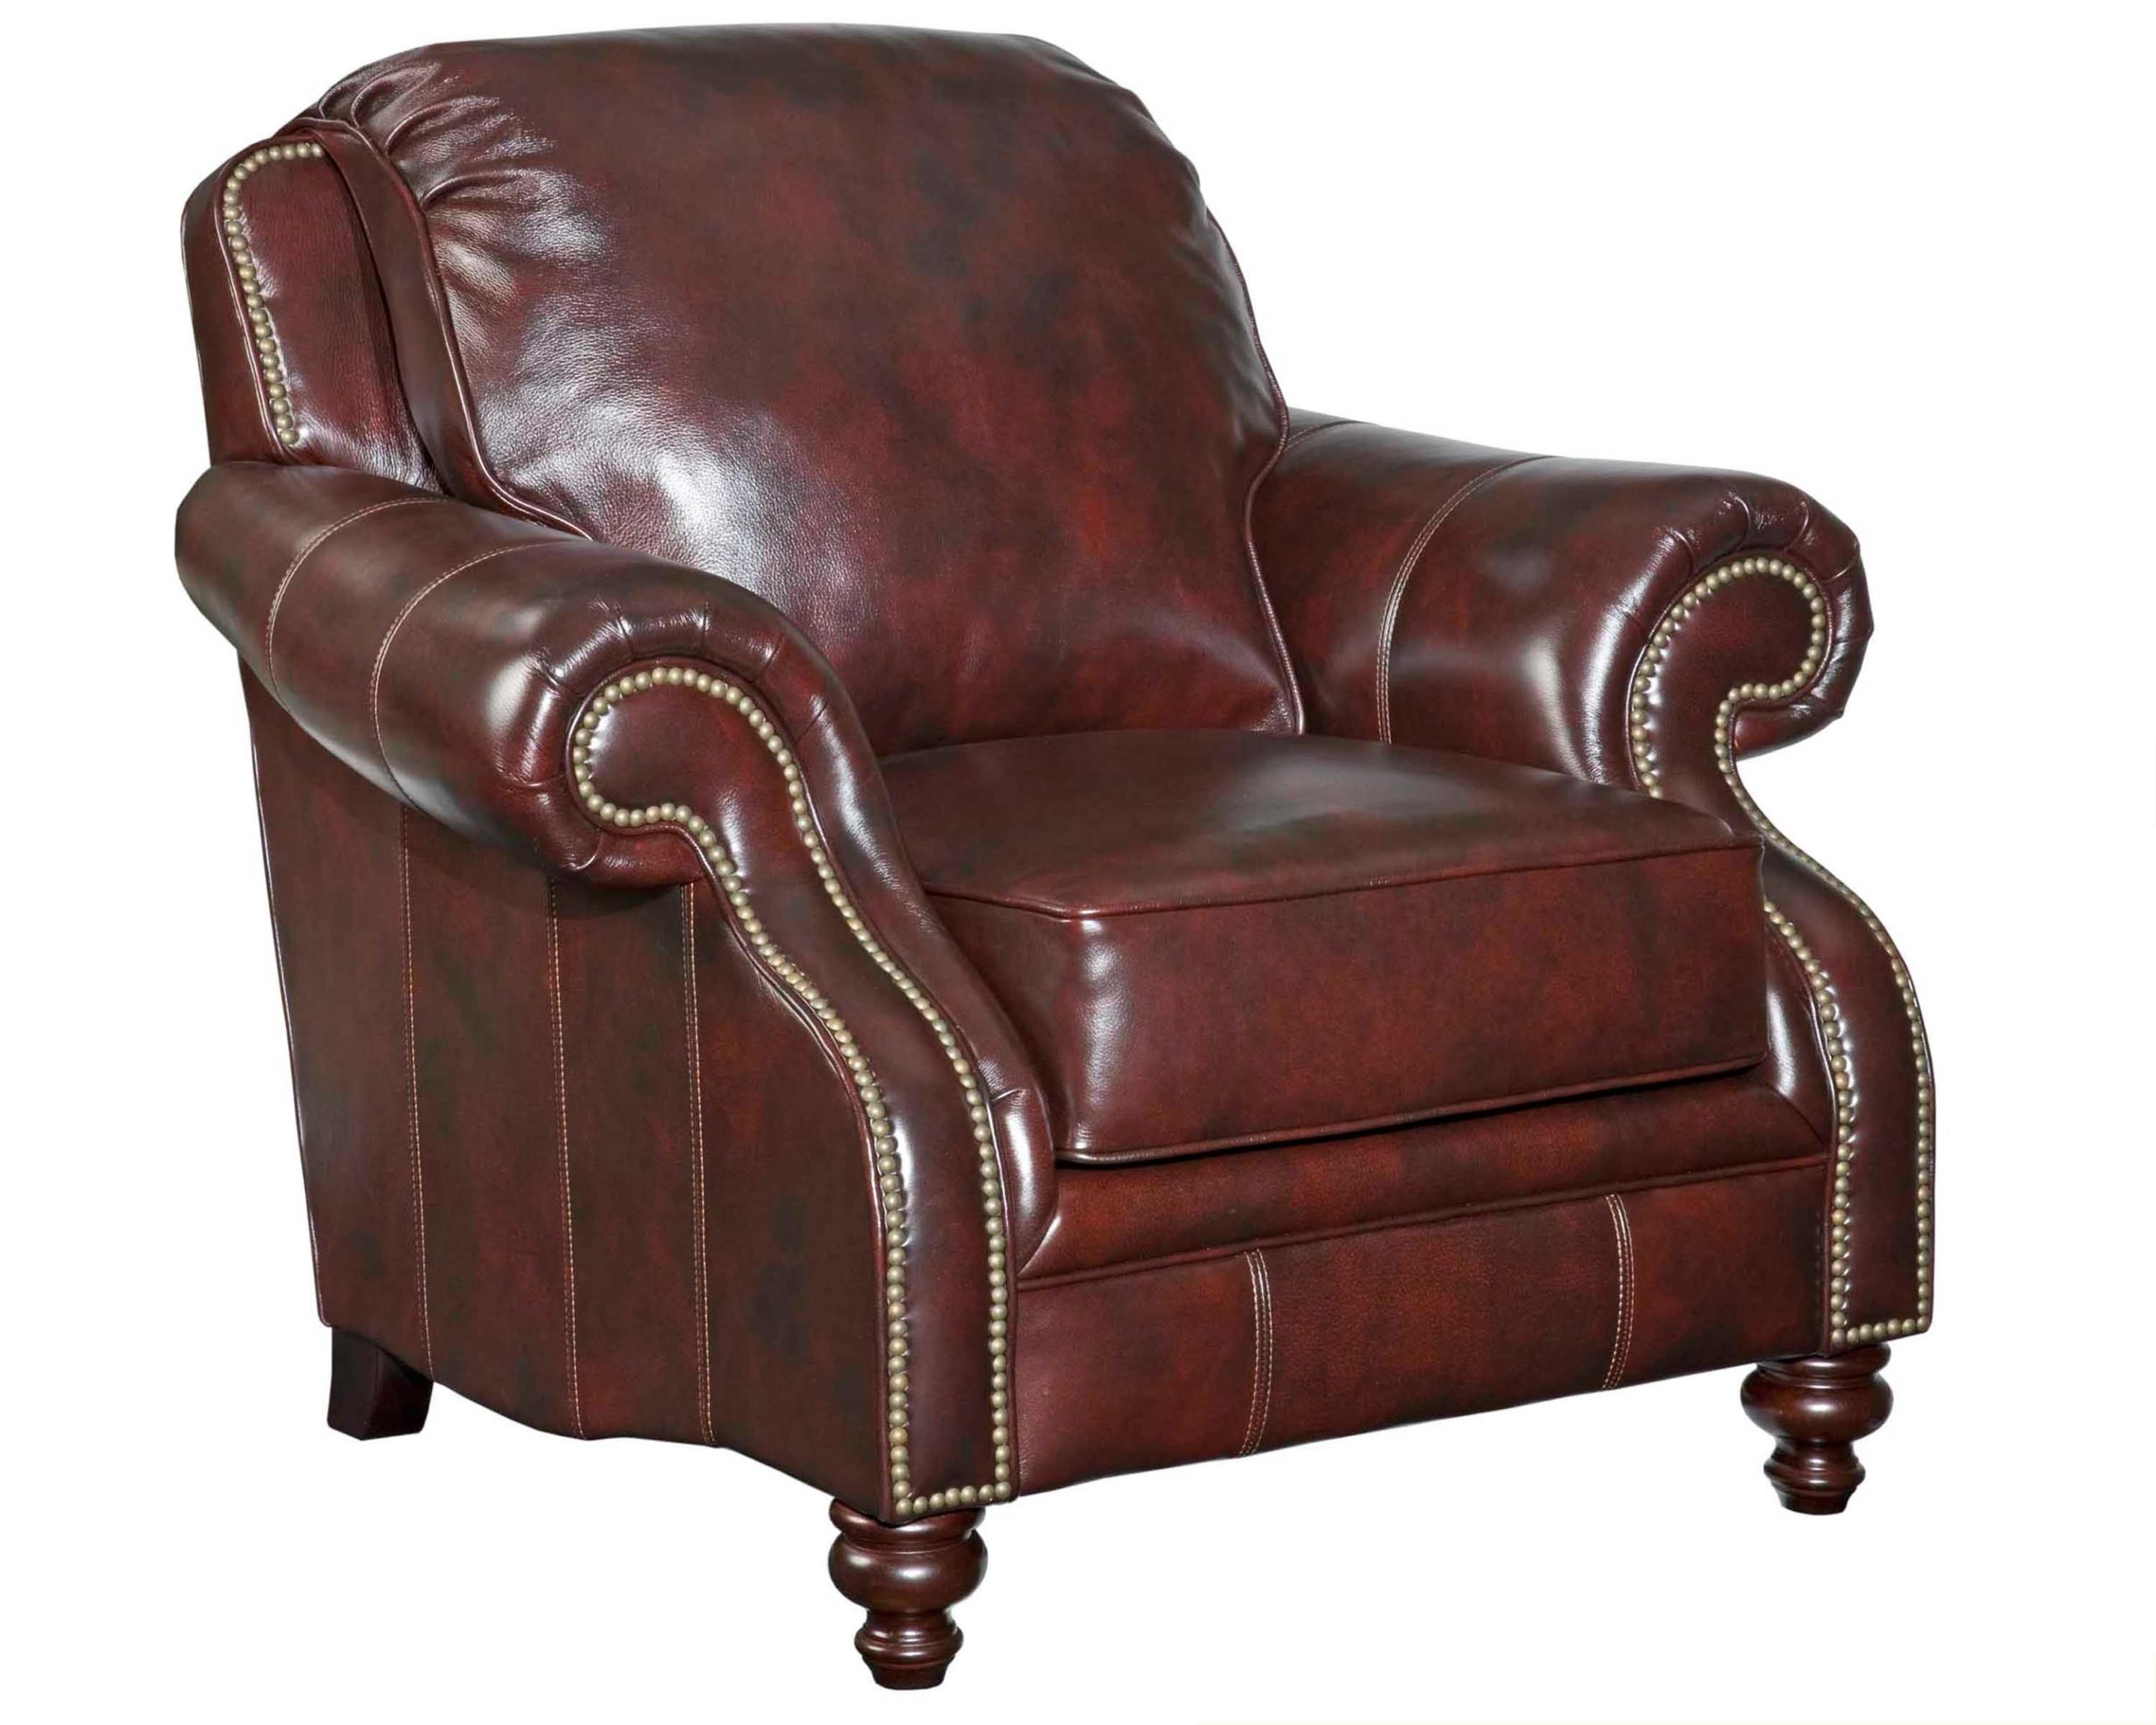 Image of: Upholstered Accent Chairs With Arms